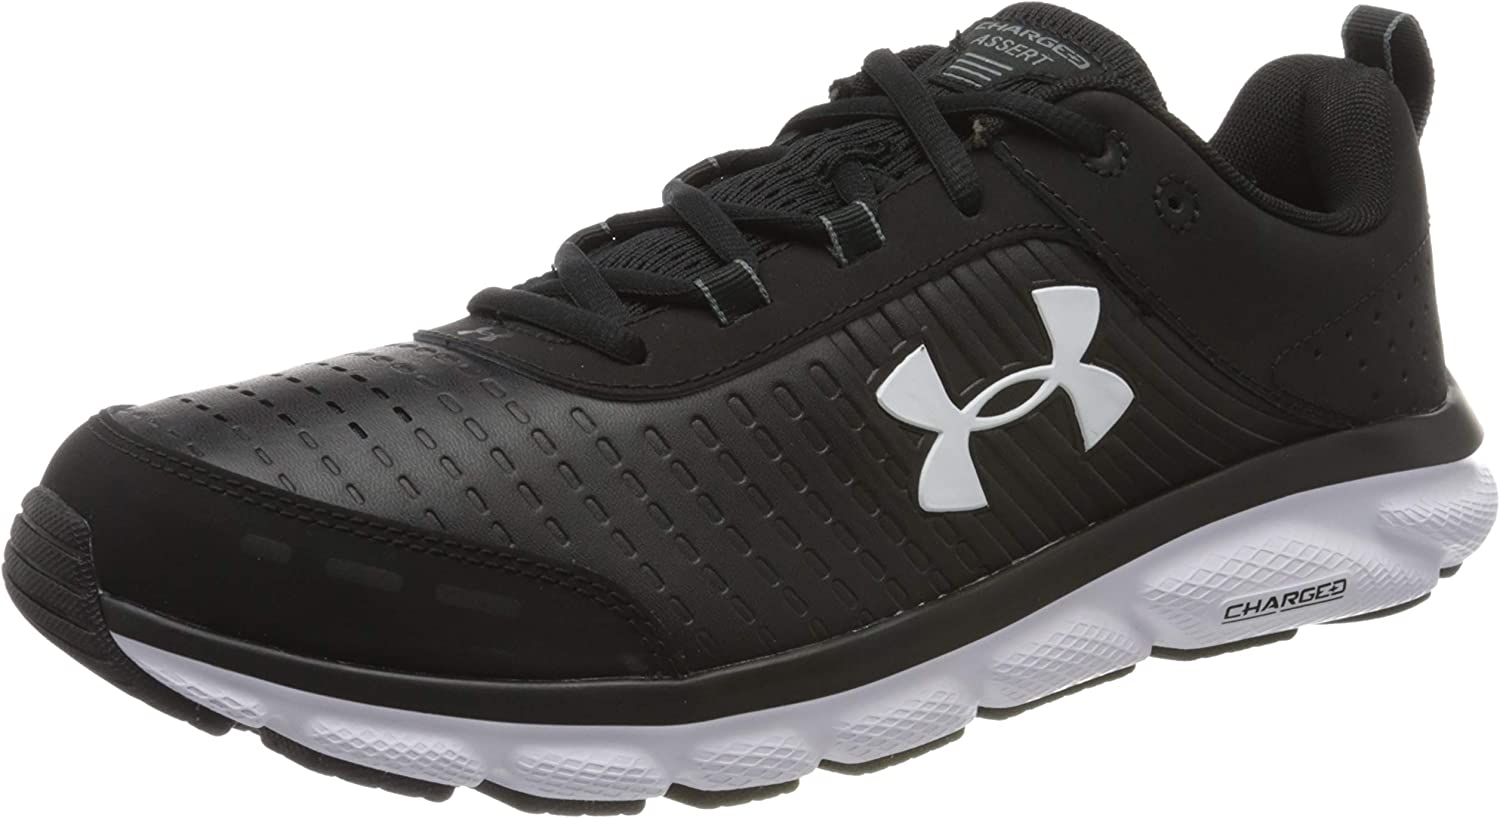 Under Armour Charged Assert 8 LTD, Zapatillas para Correr para Hombre: Amazon.es: Zapatos y complementos